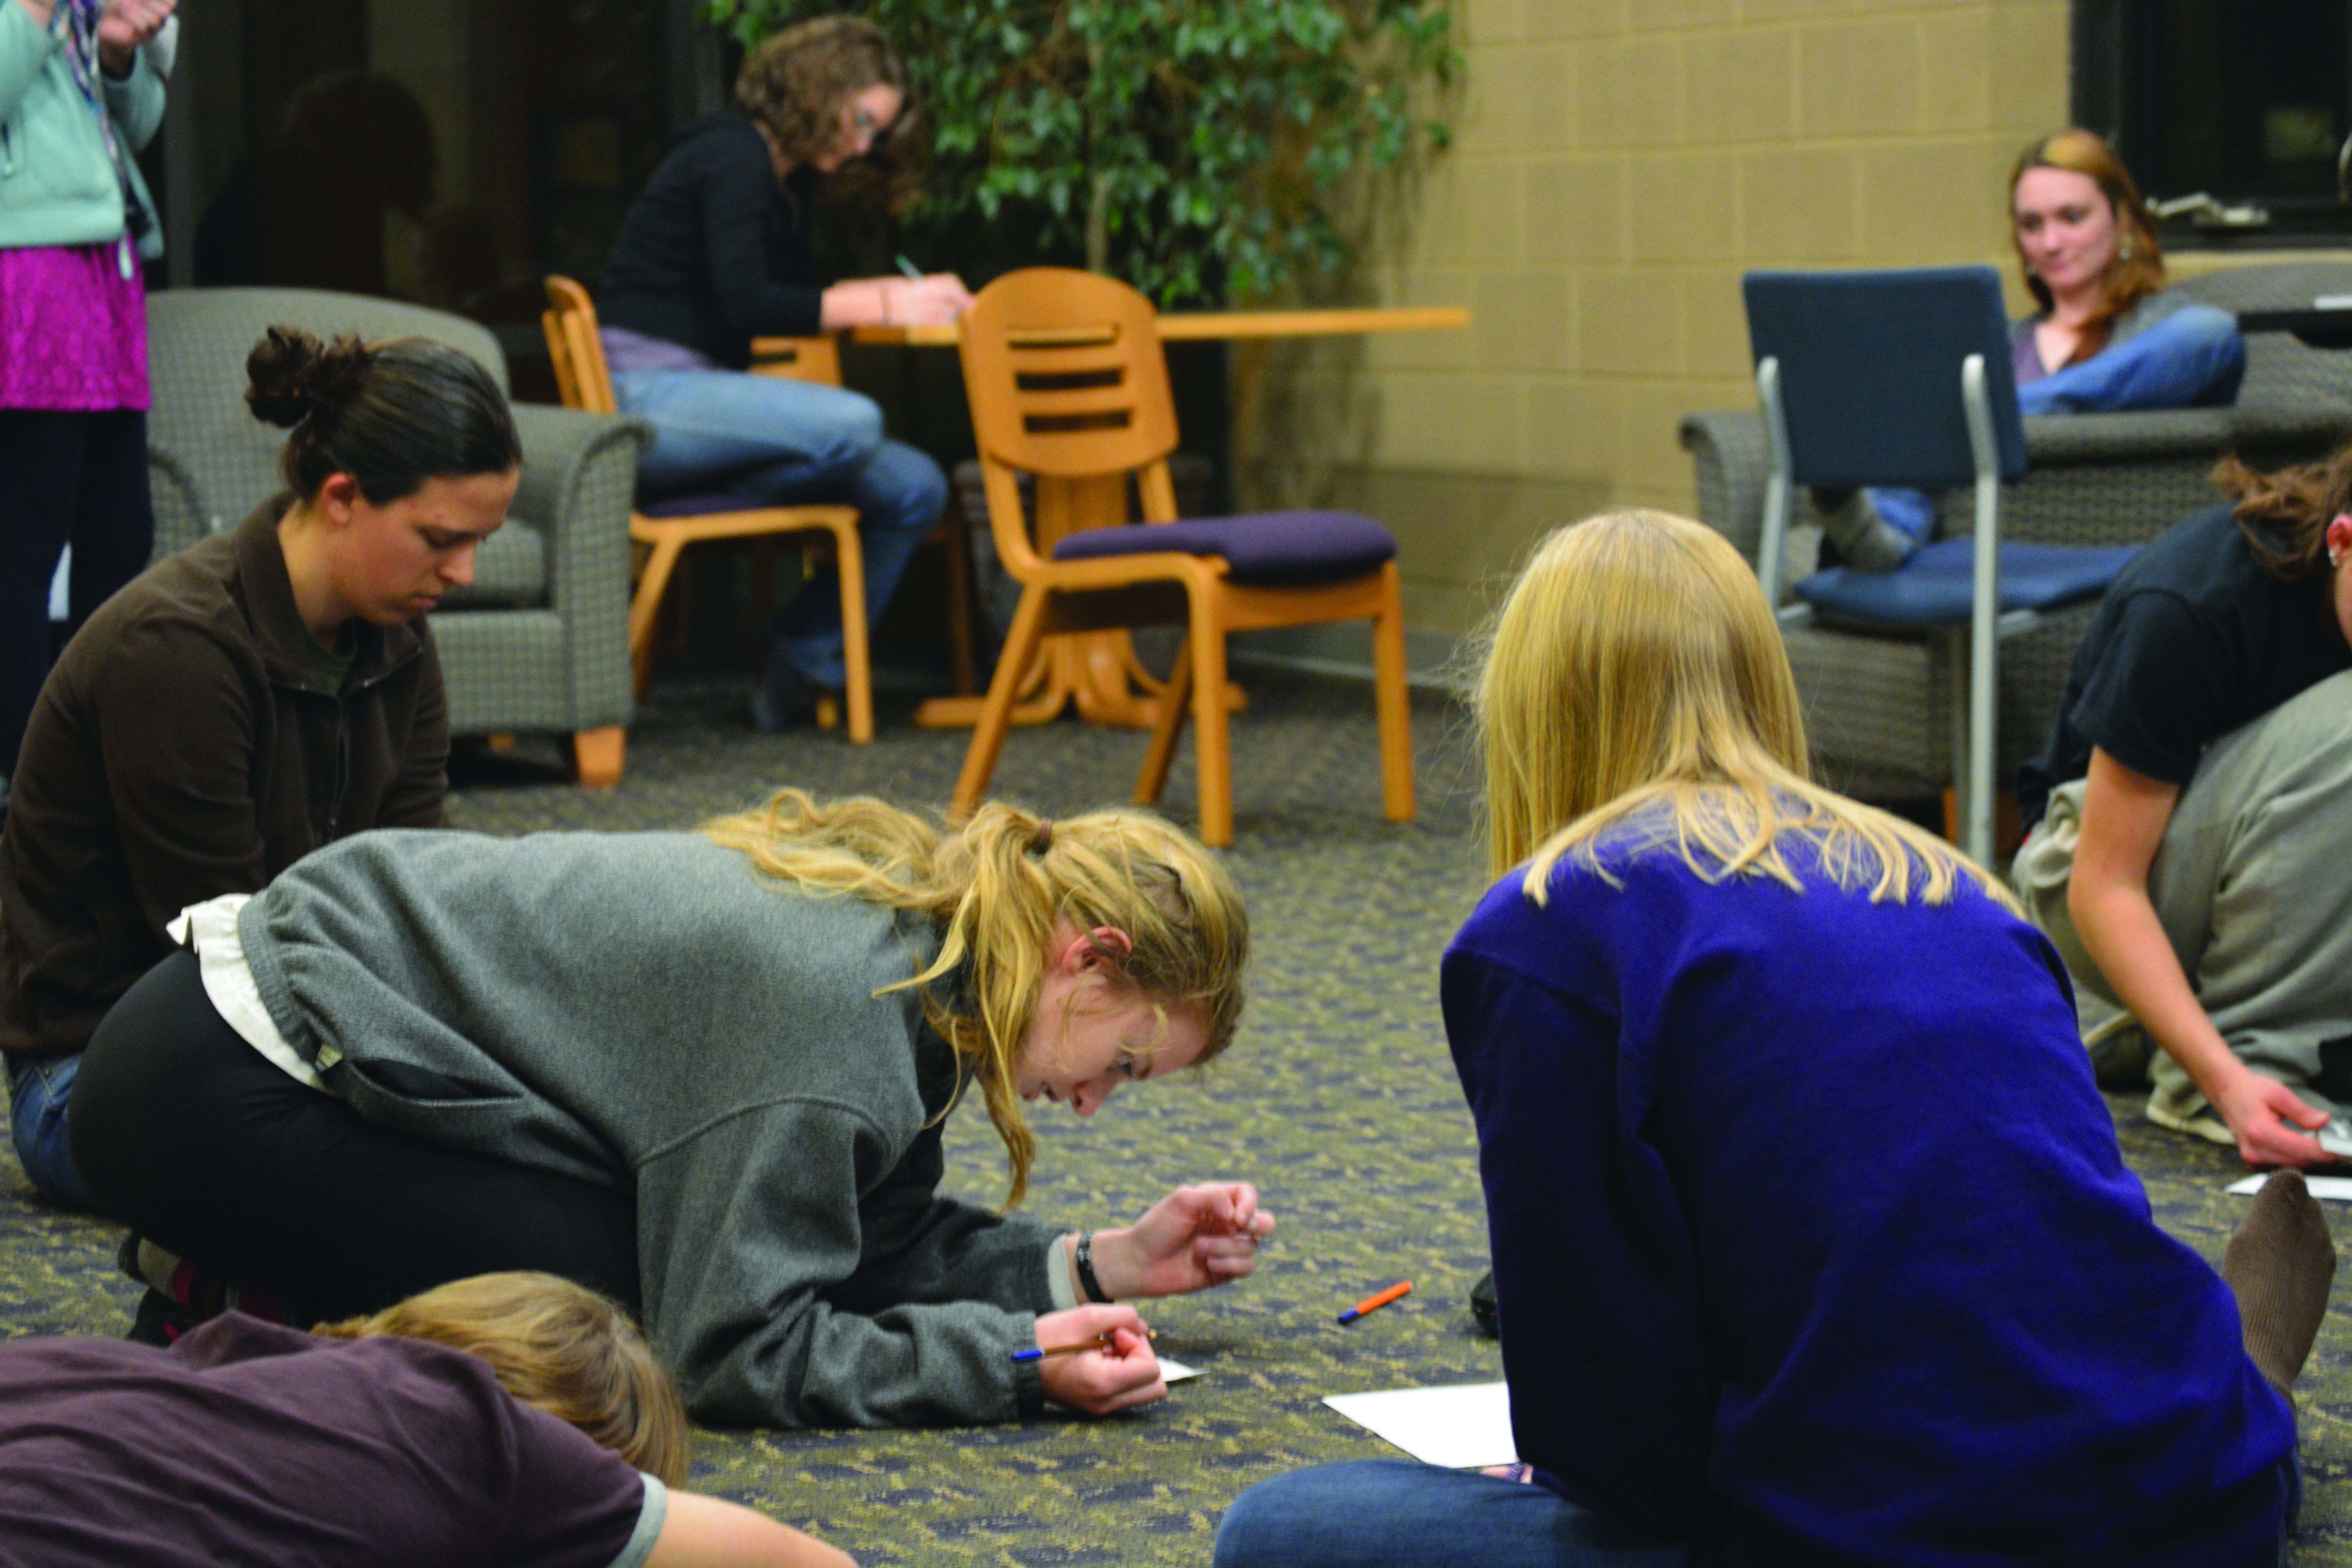 Kelly Miller and other students fill out worksheets in a dorm connector during a reflective exercise for the Conversations on Mental Health event